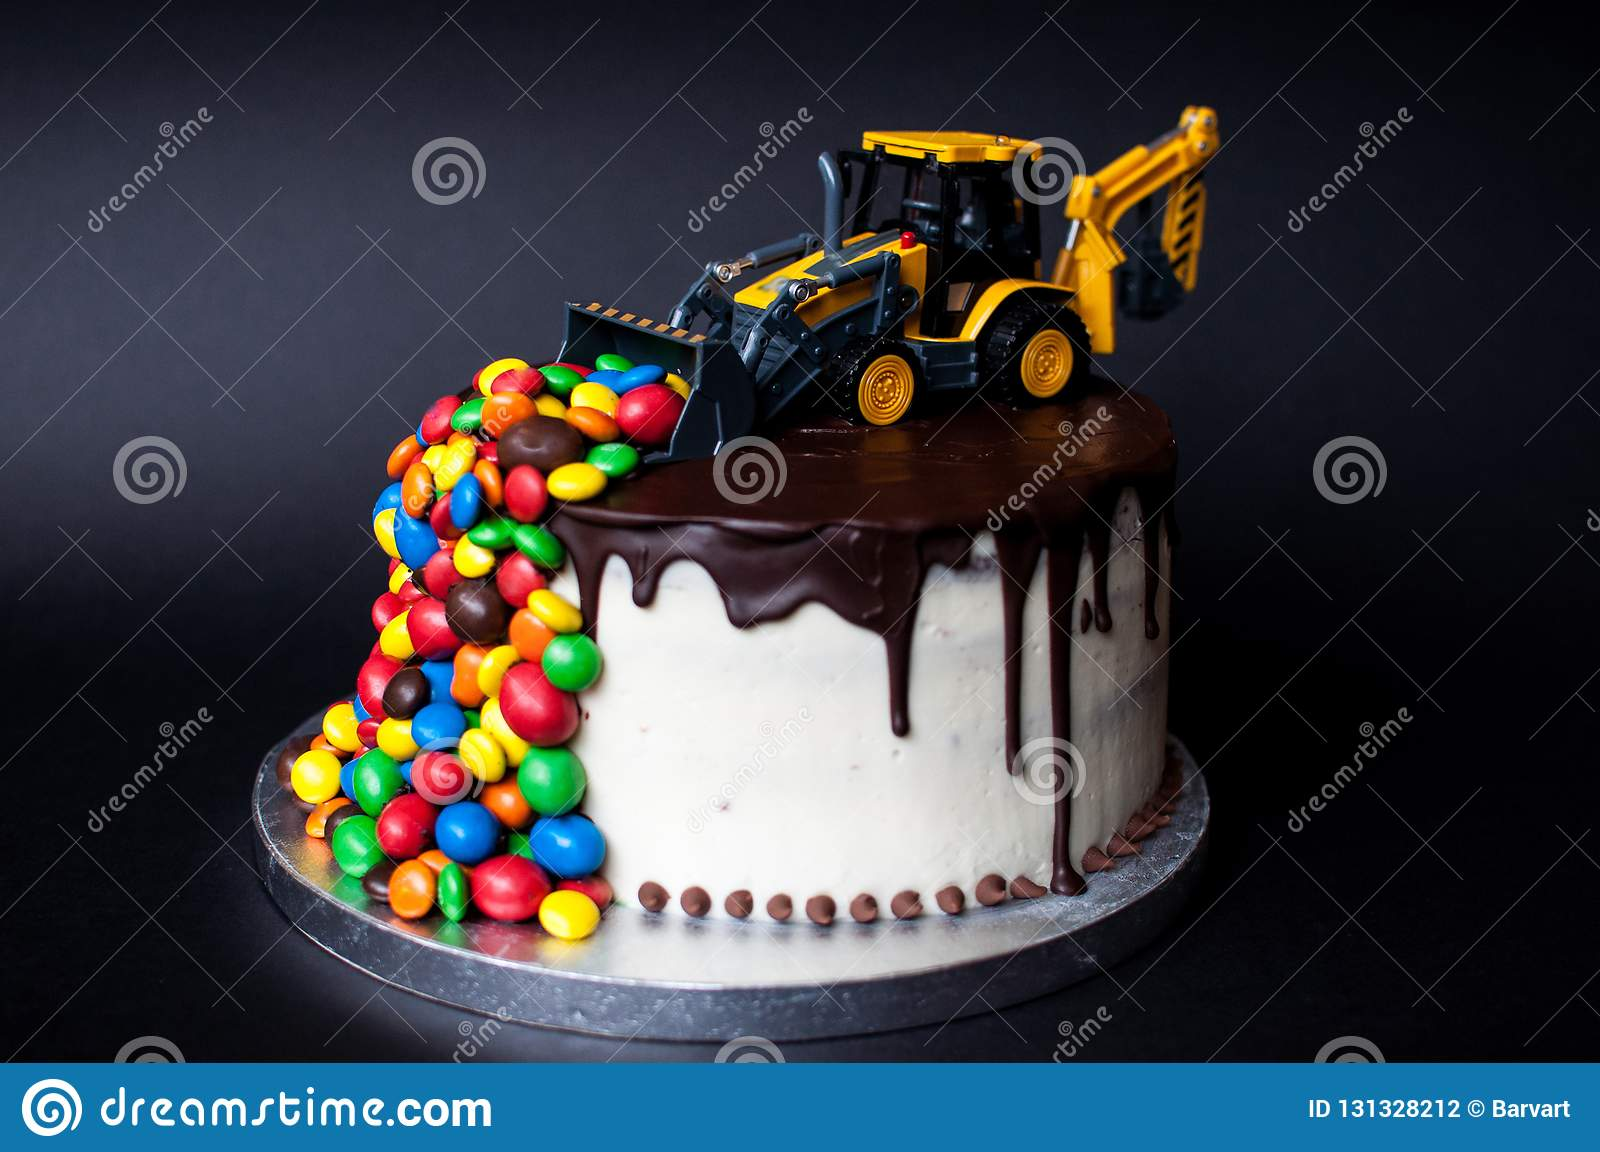 Birthday Chocolate Cake With Tractor And Candy On Top